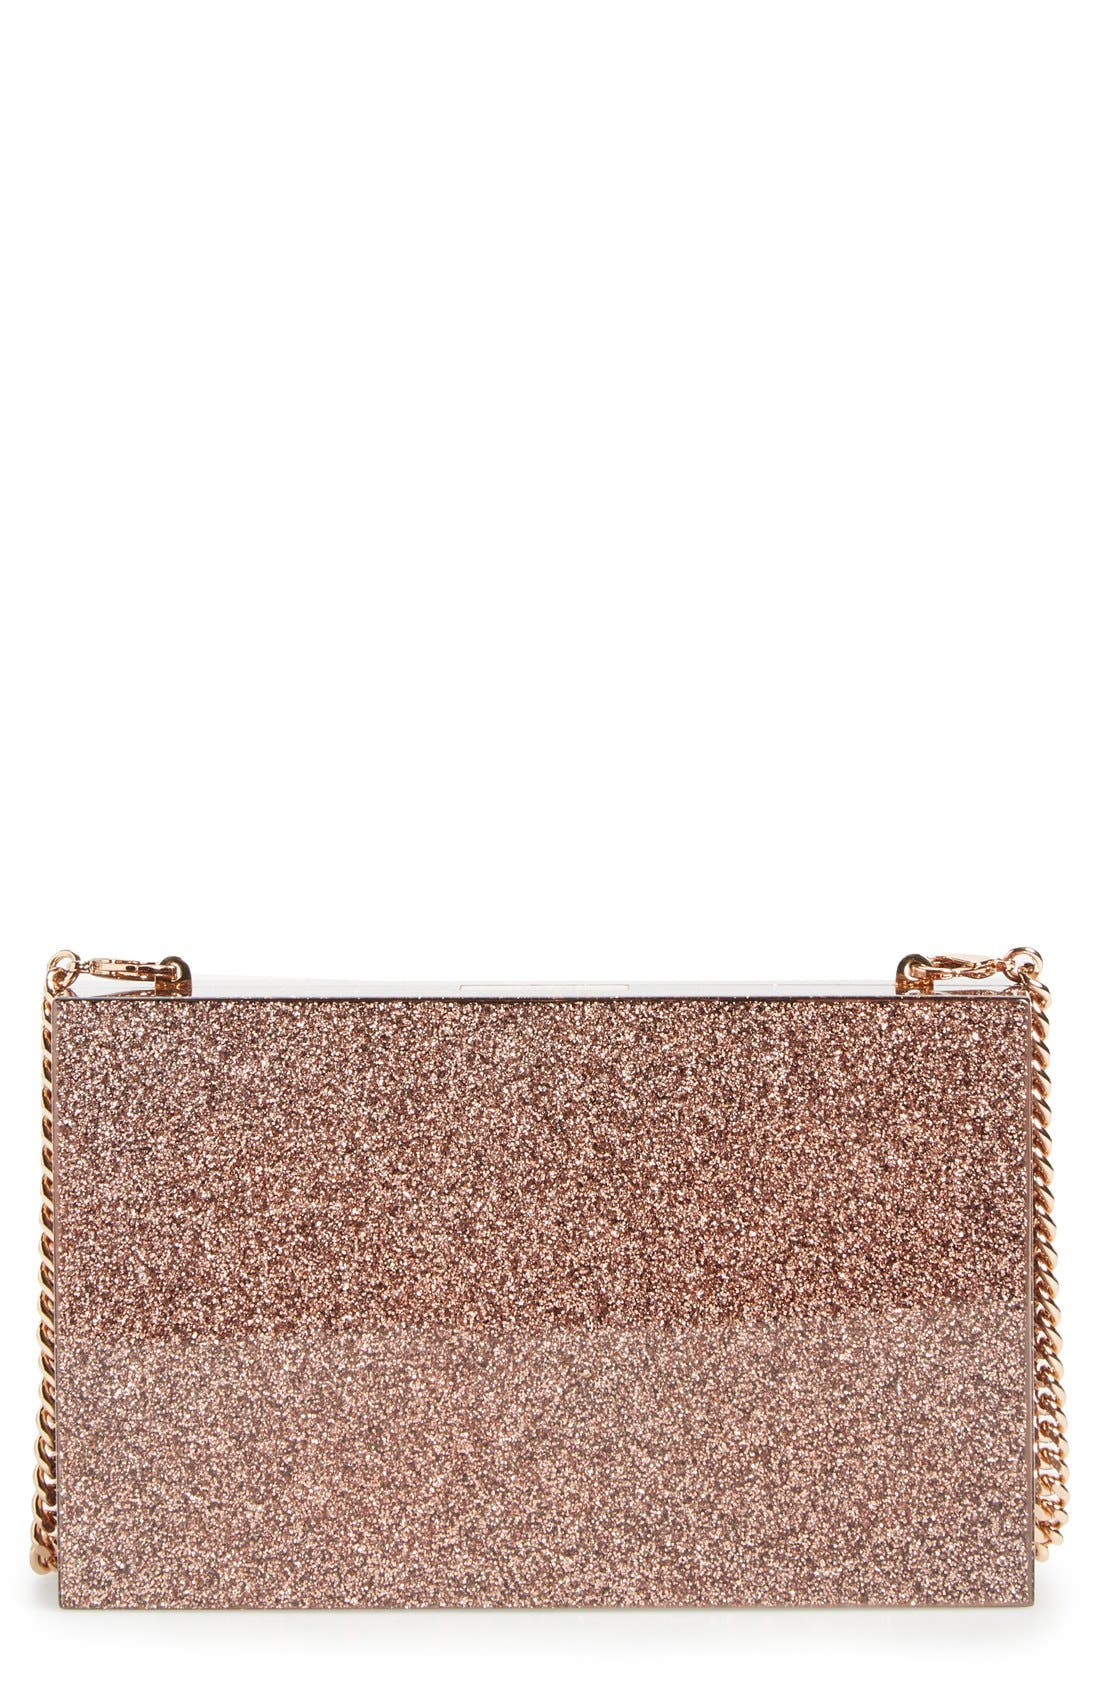 Alternate Image 1 Selected - Stella McCartney 'Mix Glitter' Box Minaudière